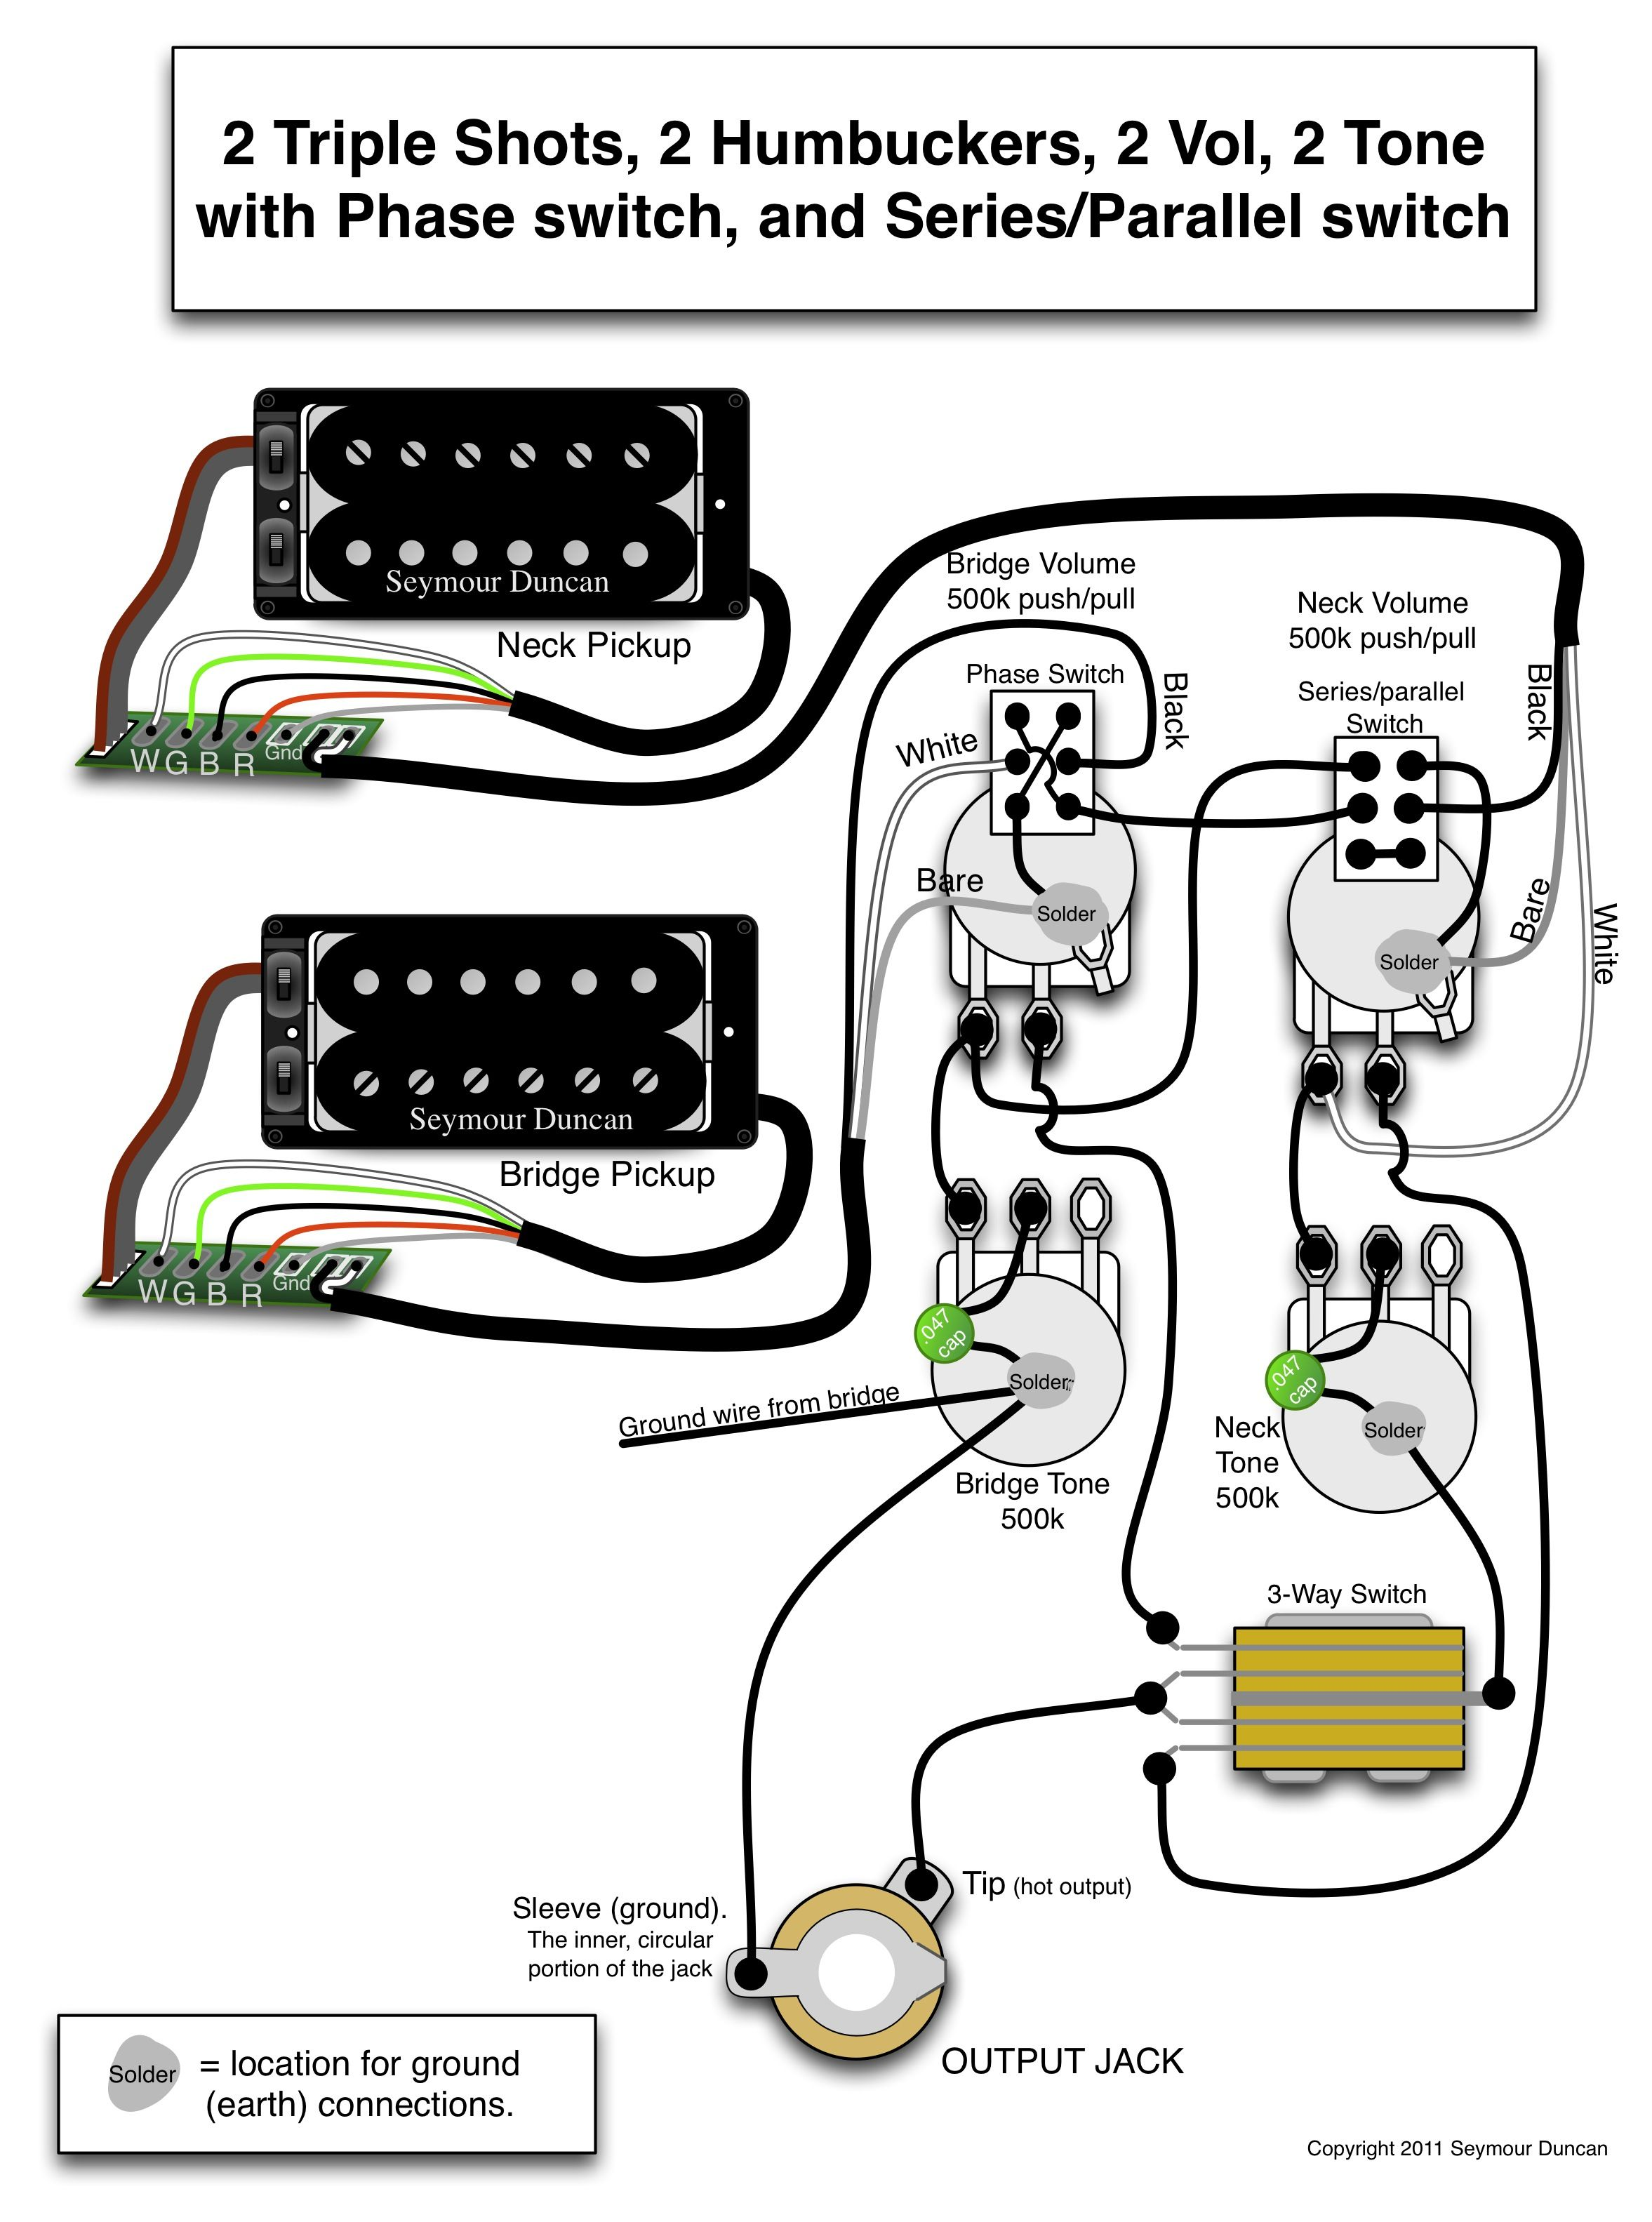 medium resolution of seymour duncan wiring diagram 2 triple shots 2 humbuckers 2 vol 2